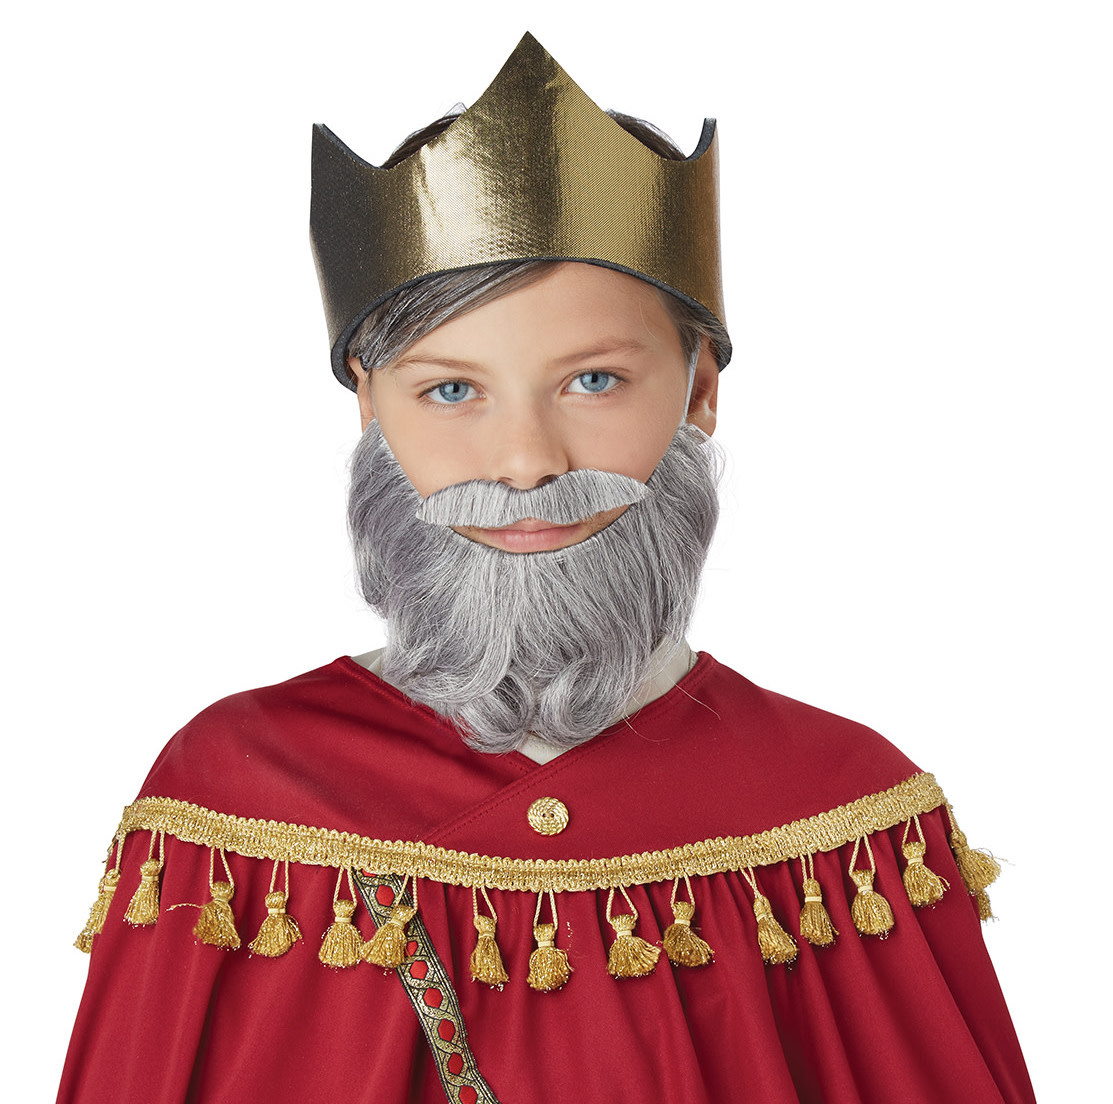 Nativity Costumes & Accessories